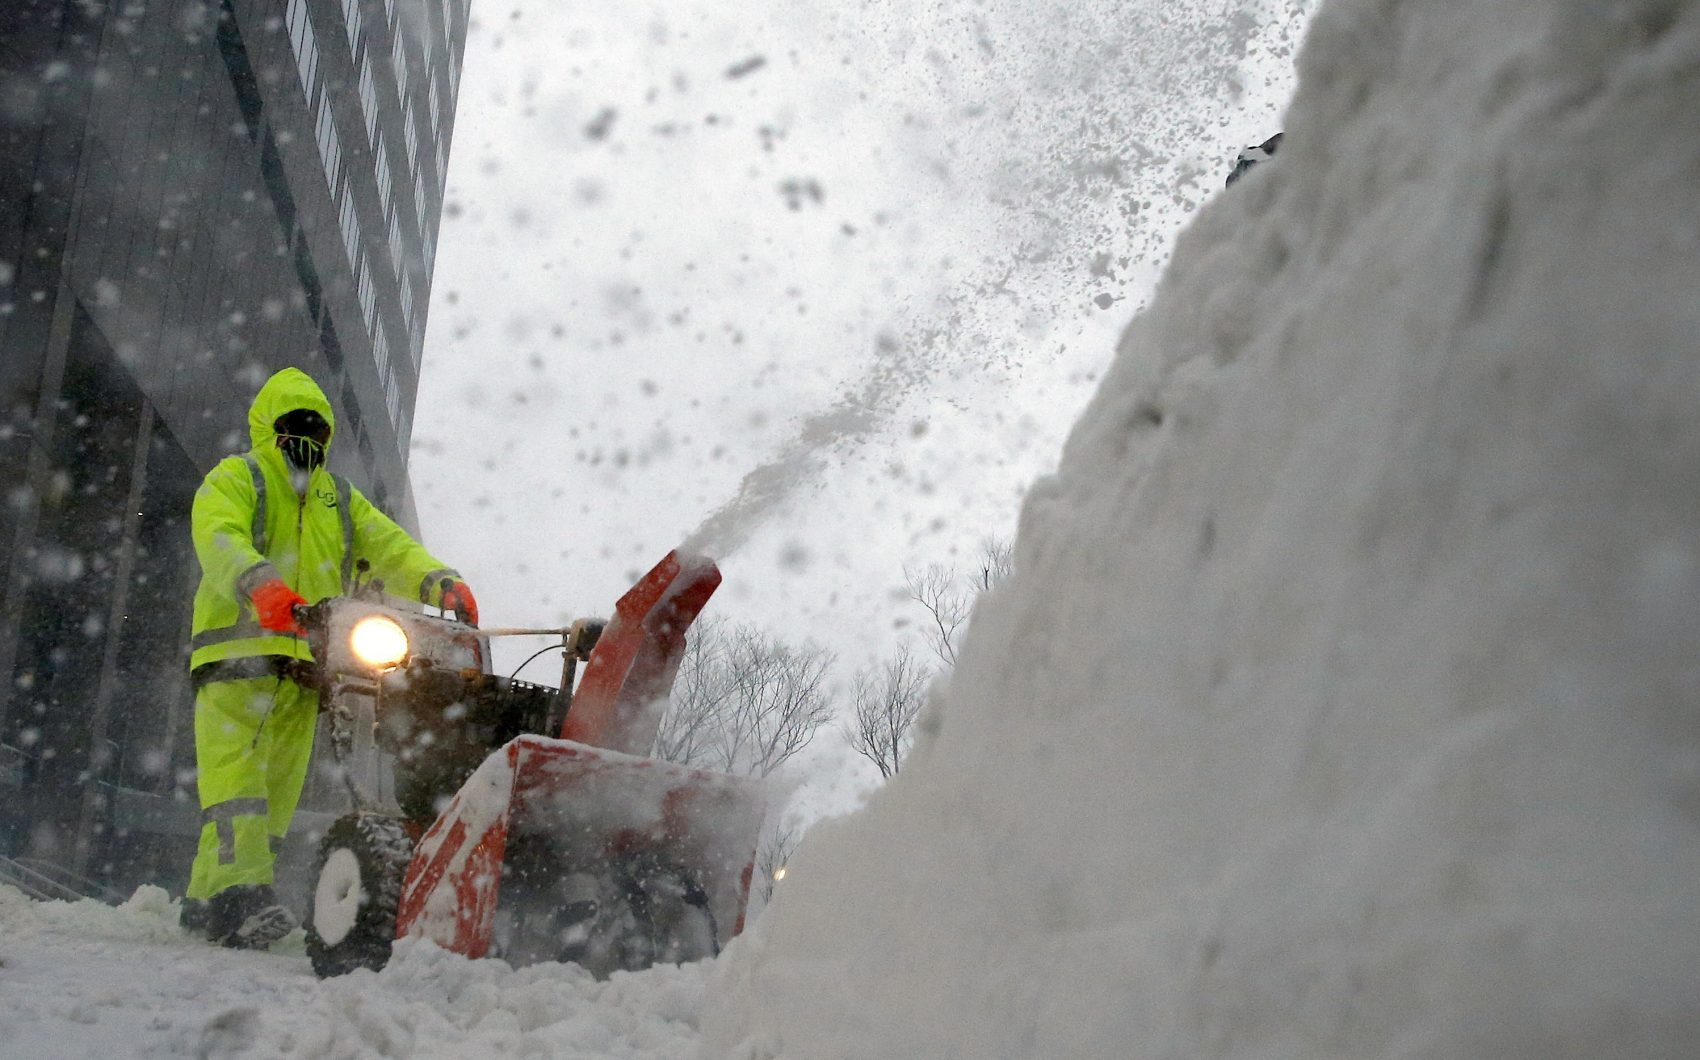 A worker clears the sidewalk in Boston, Thursday, Jan. 4, 2018. A massive winter storm swept from the Carolinas to Maine on Thursday, dumping snow along the coast and bringing strong winds that will usher in possible record-breaking cold. (Michael Dwyer/AP)